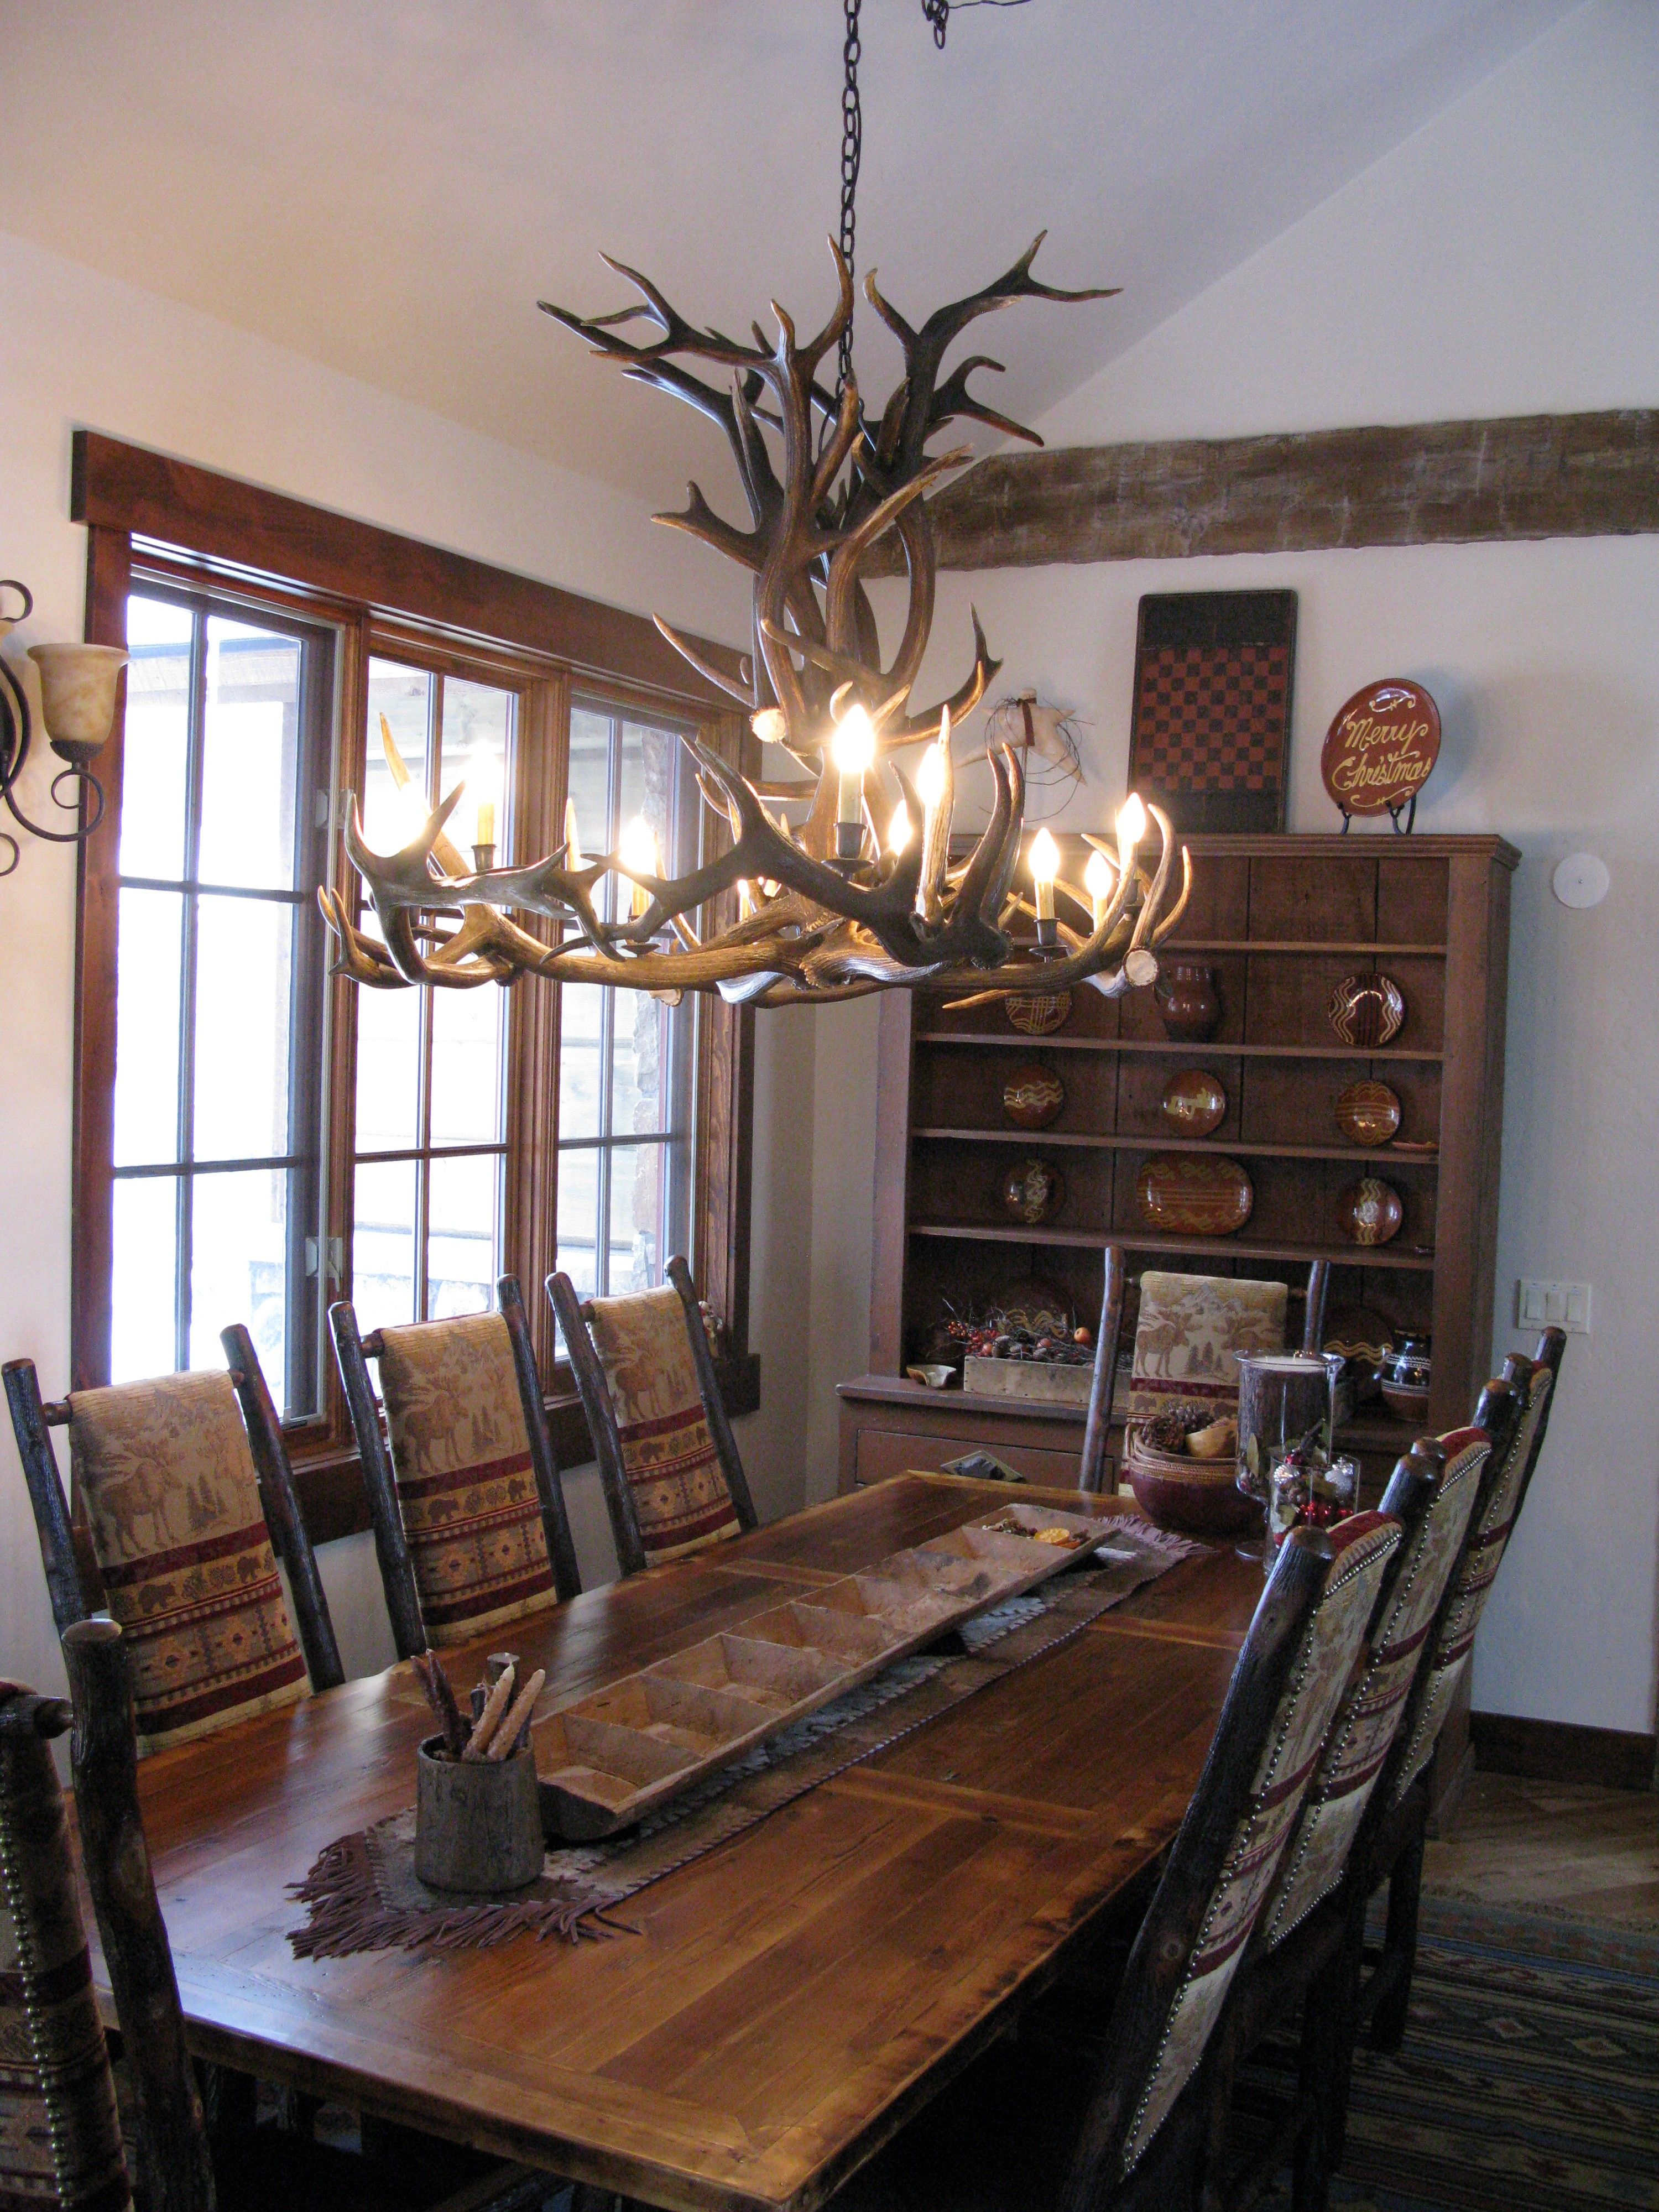 Mediterranean Dining Photos Rustic Tuscan Decor Design Pictures Captivating Dining Room Table Rustic Review